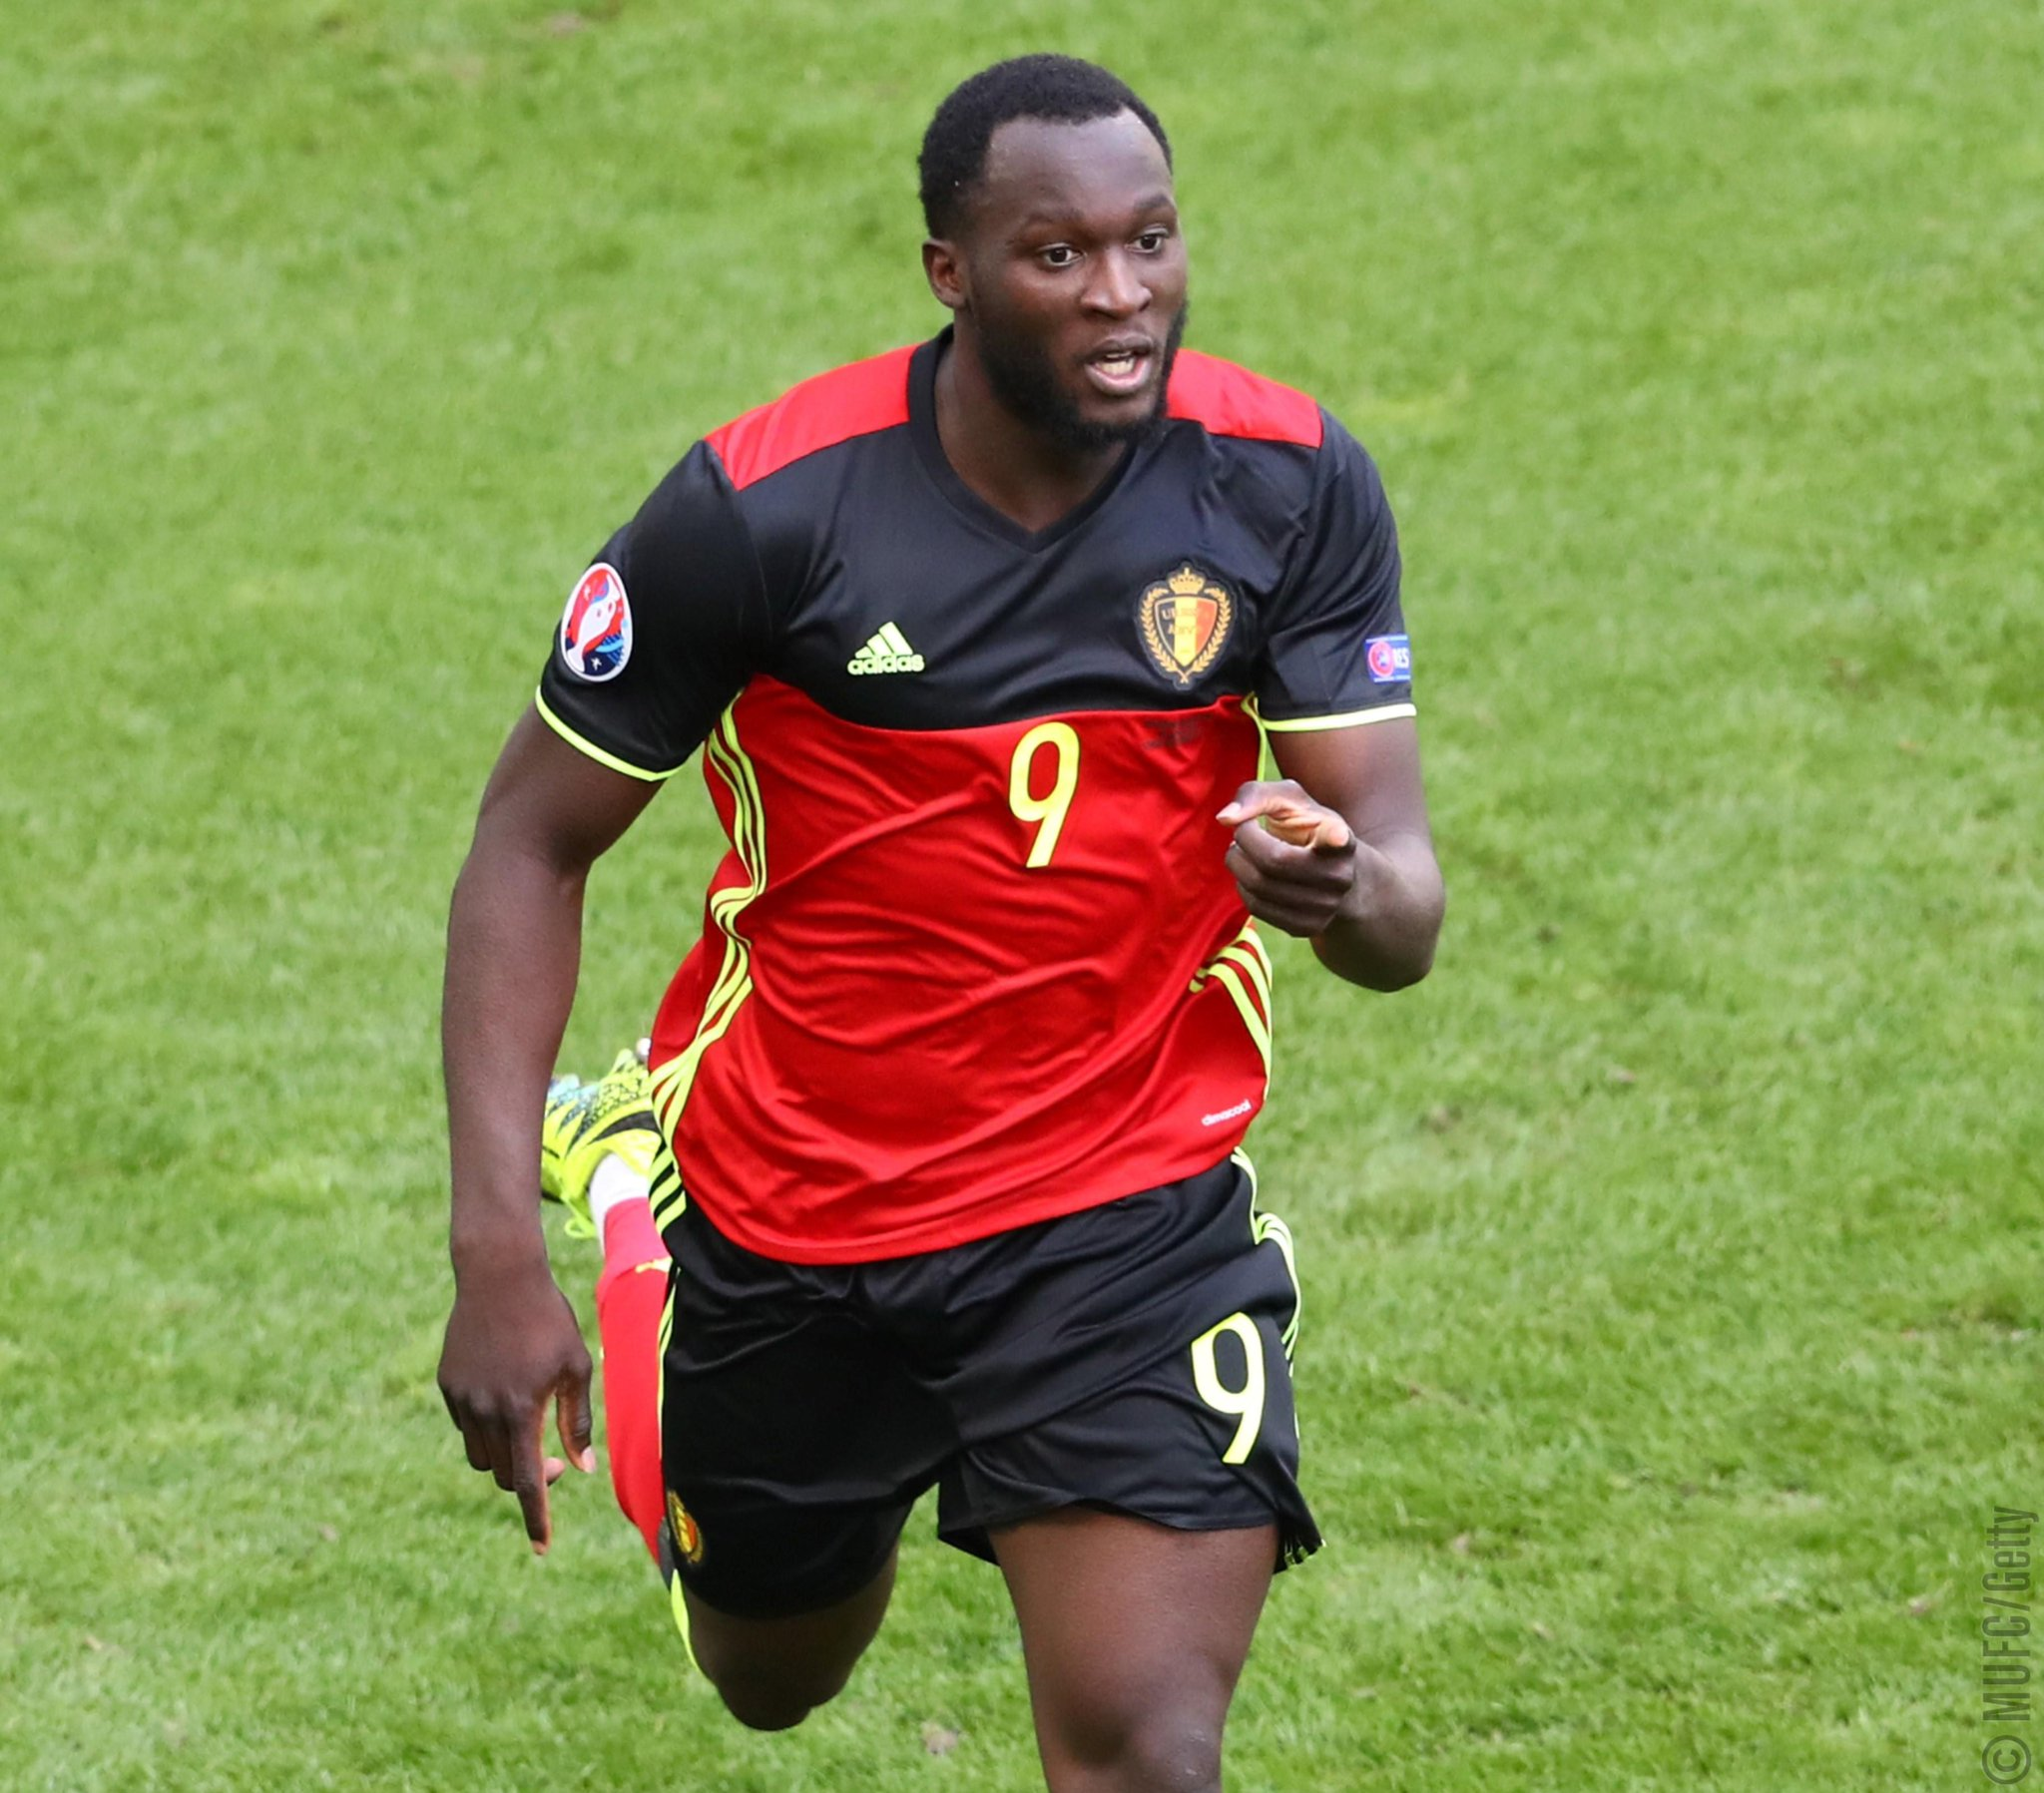 Man United Confirm Lukaku Will Join From Everton